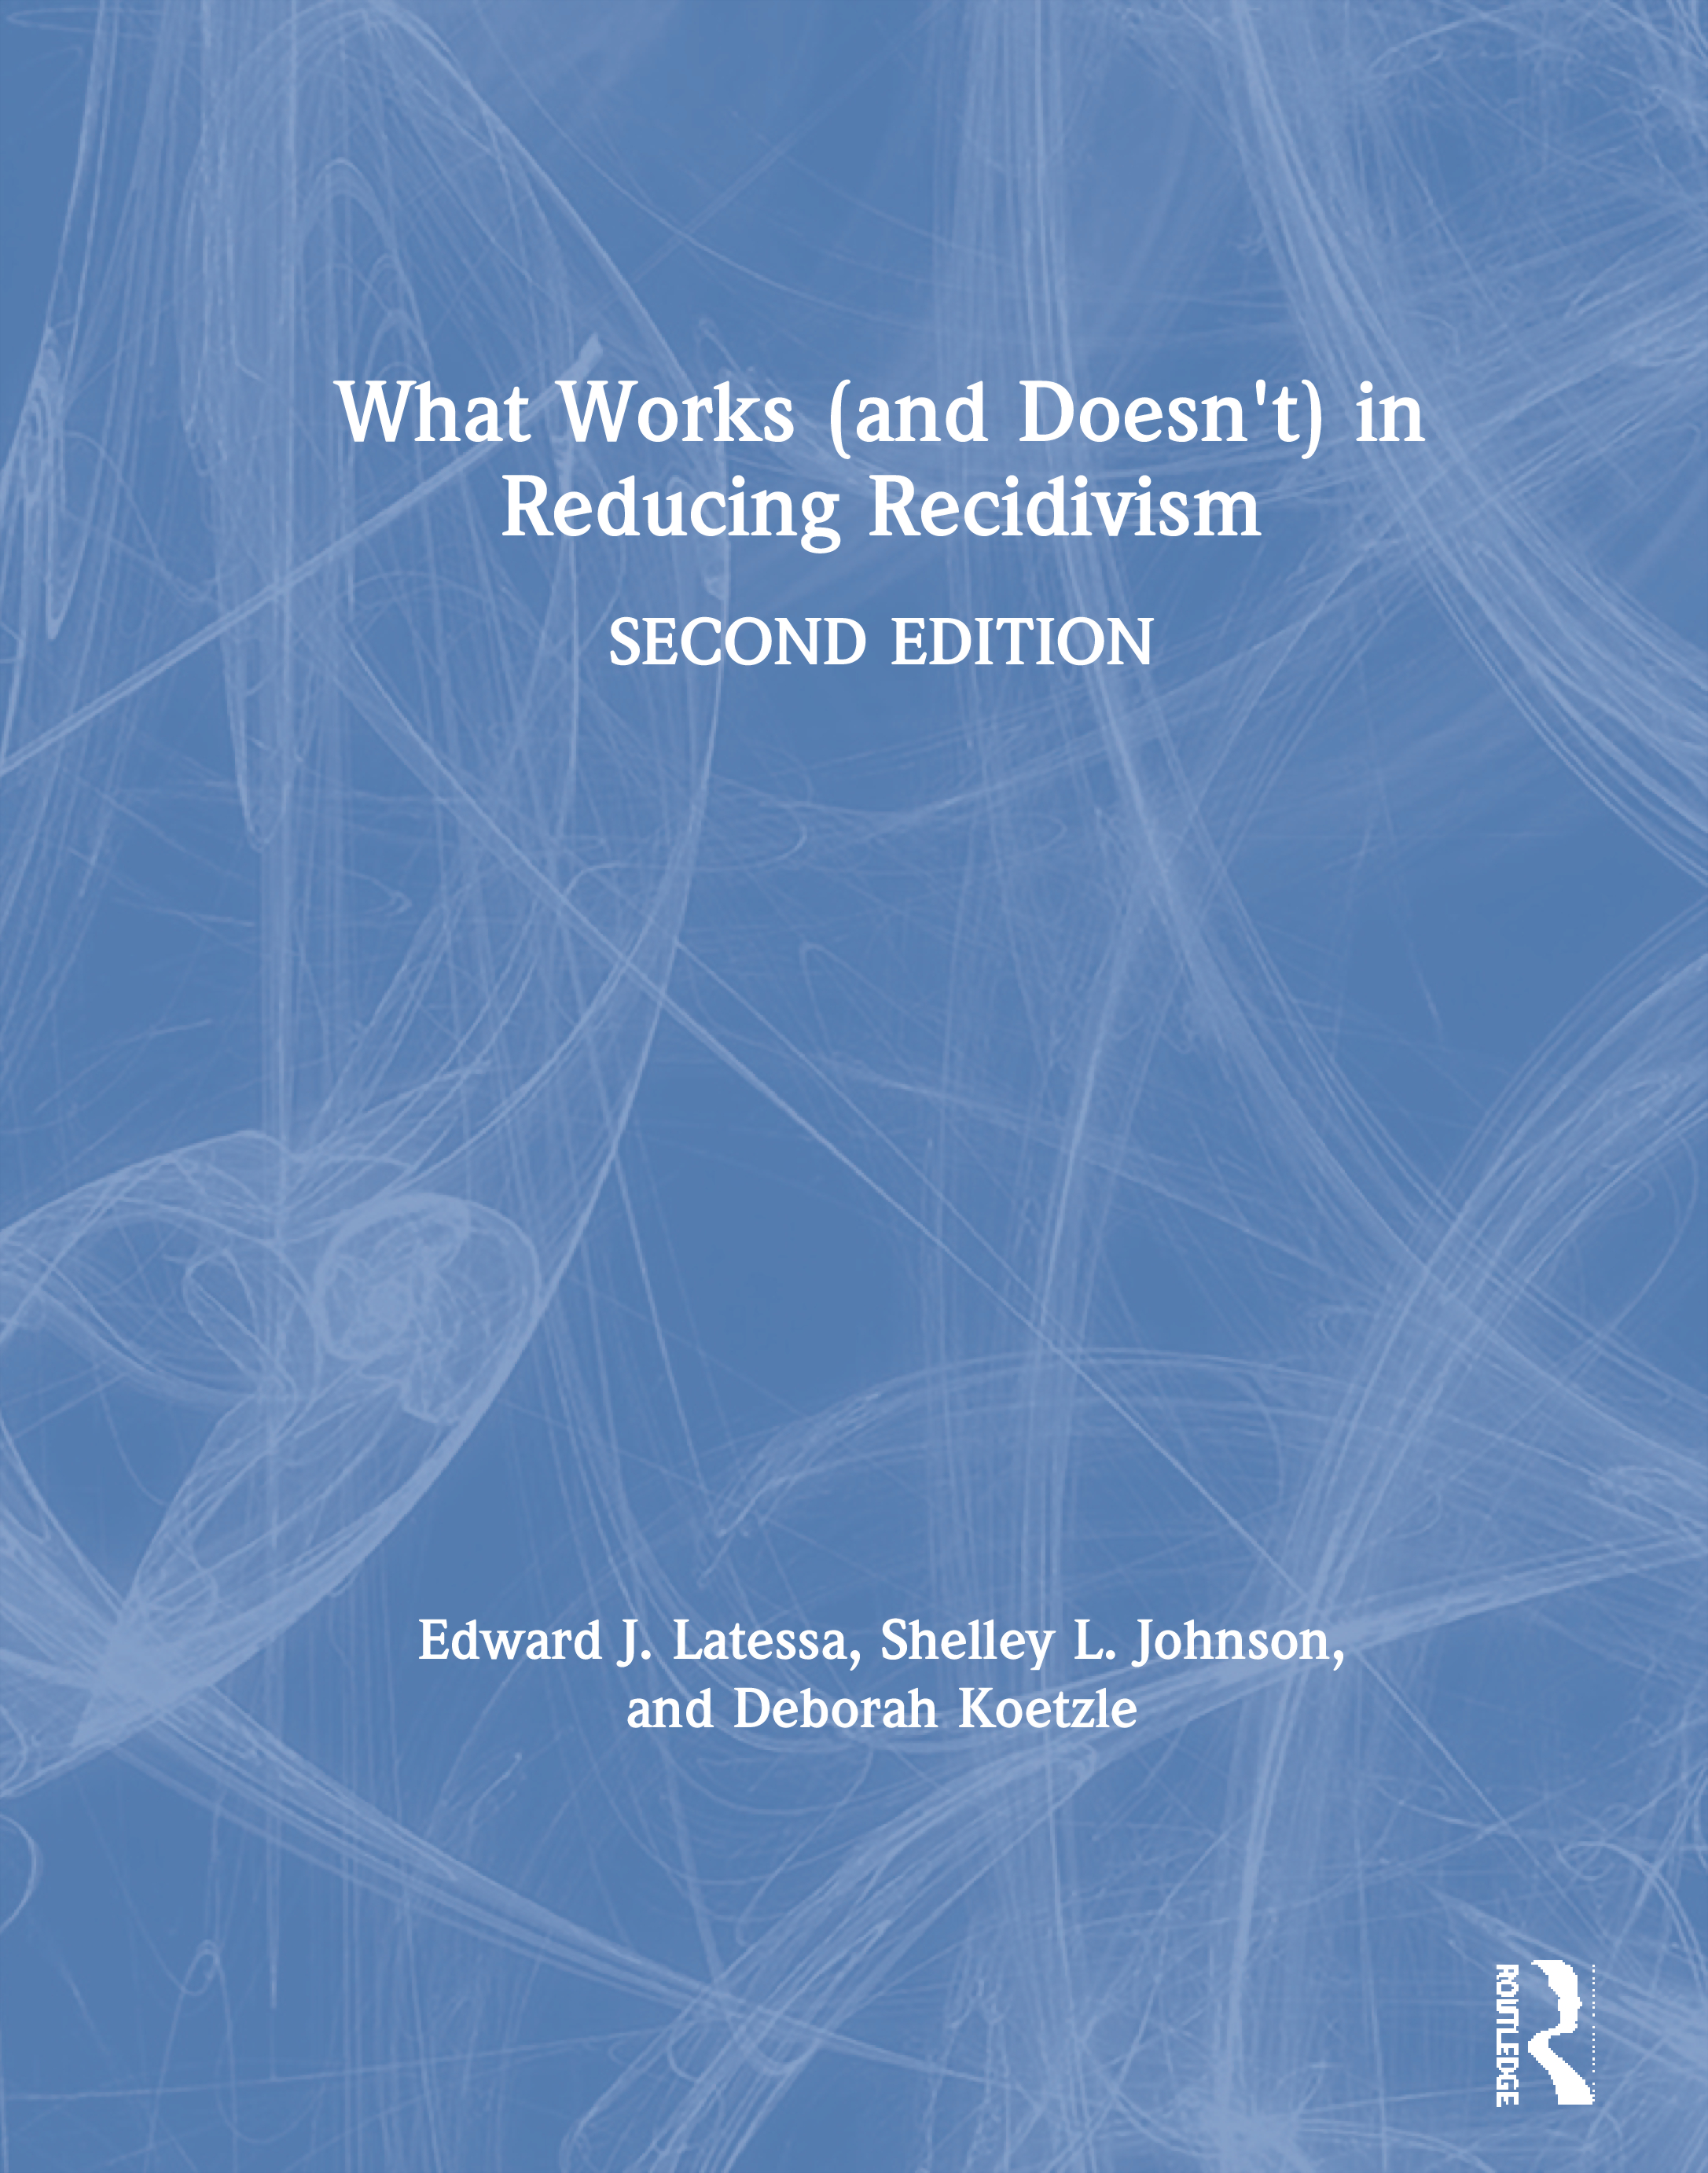 What Works (and Doesn't) in Reducing Recidivism book cover